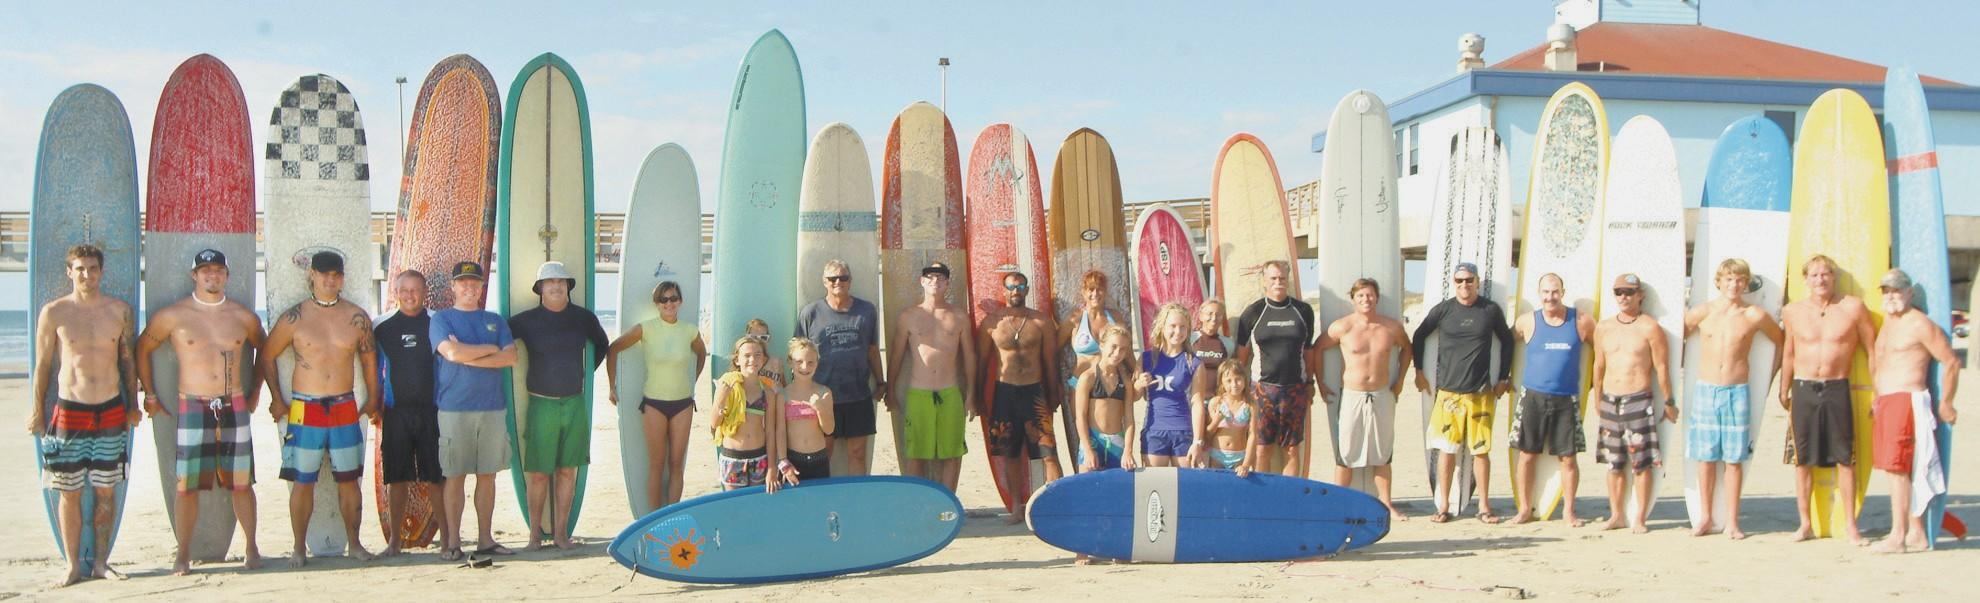 Surfers Paddle To Victory Port Aransas South Jetty